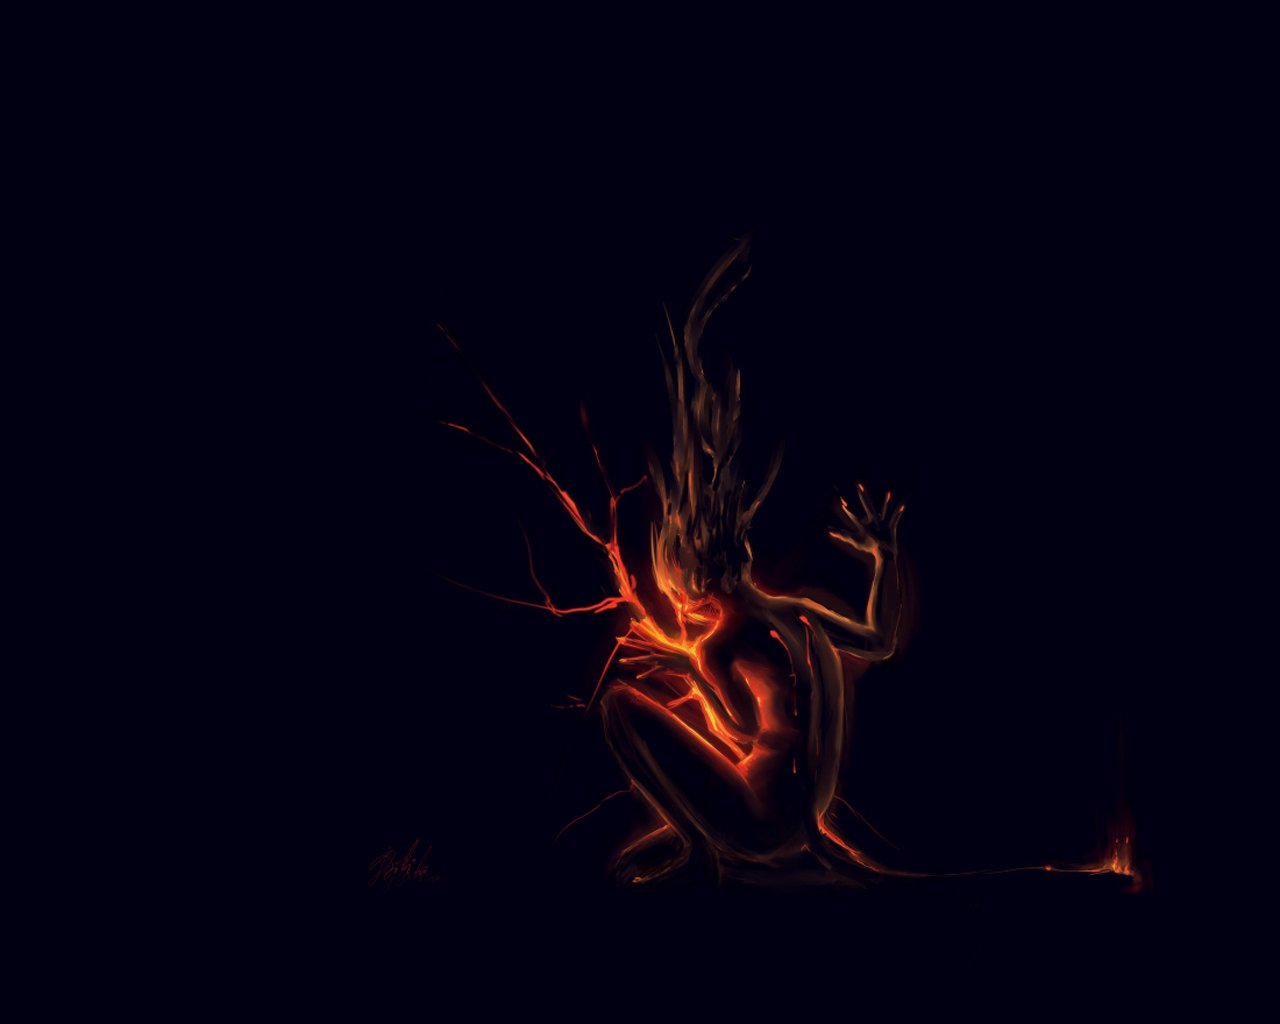 evil fire background - photo #9